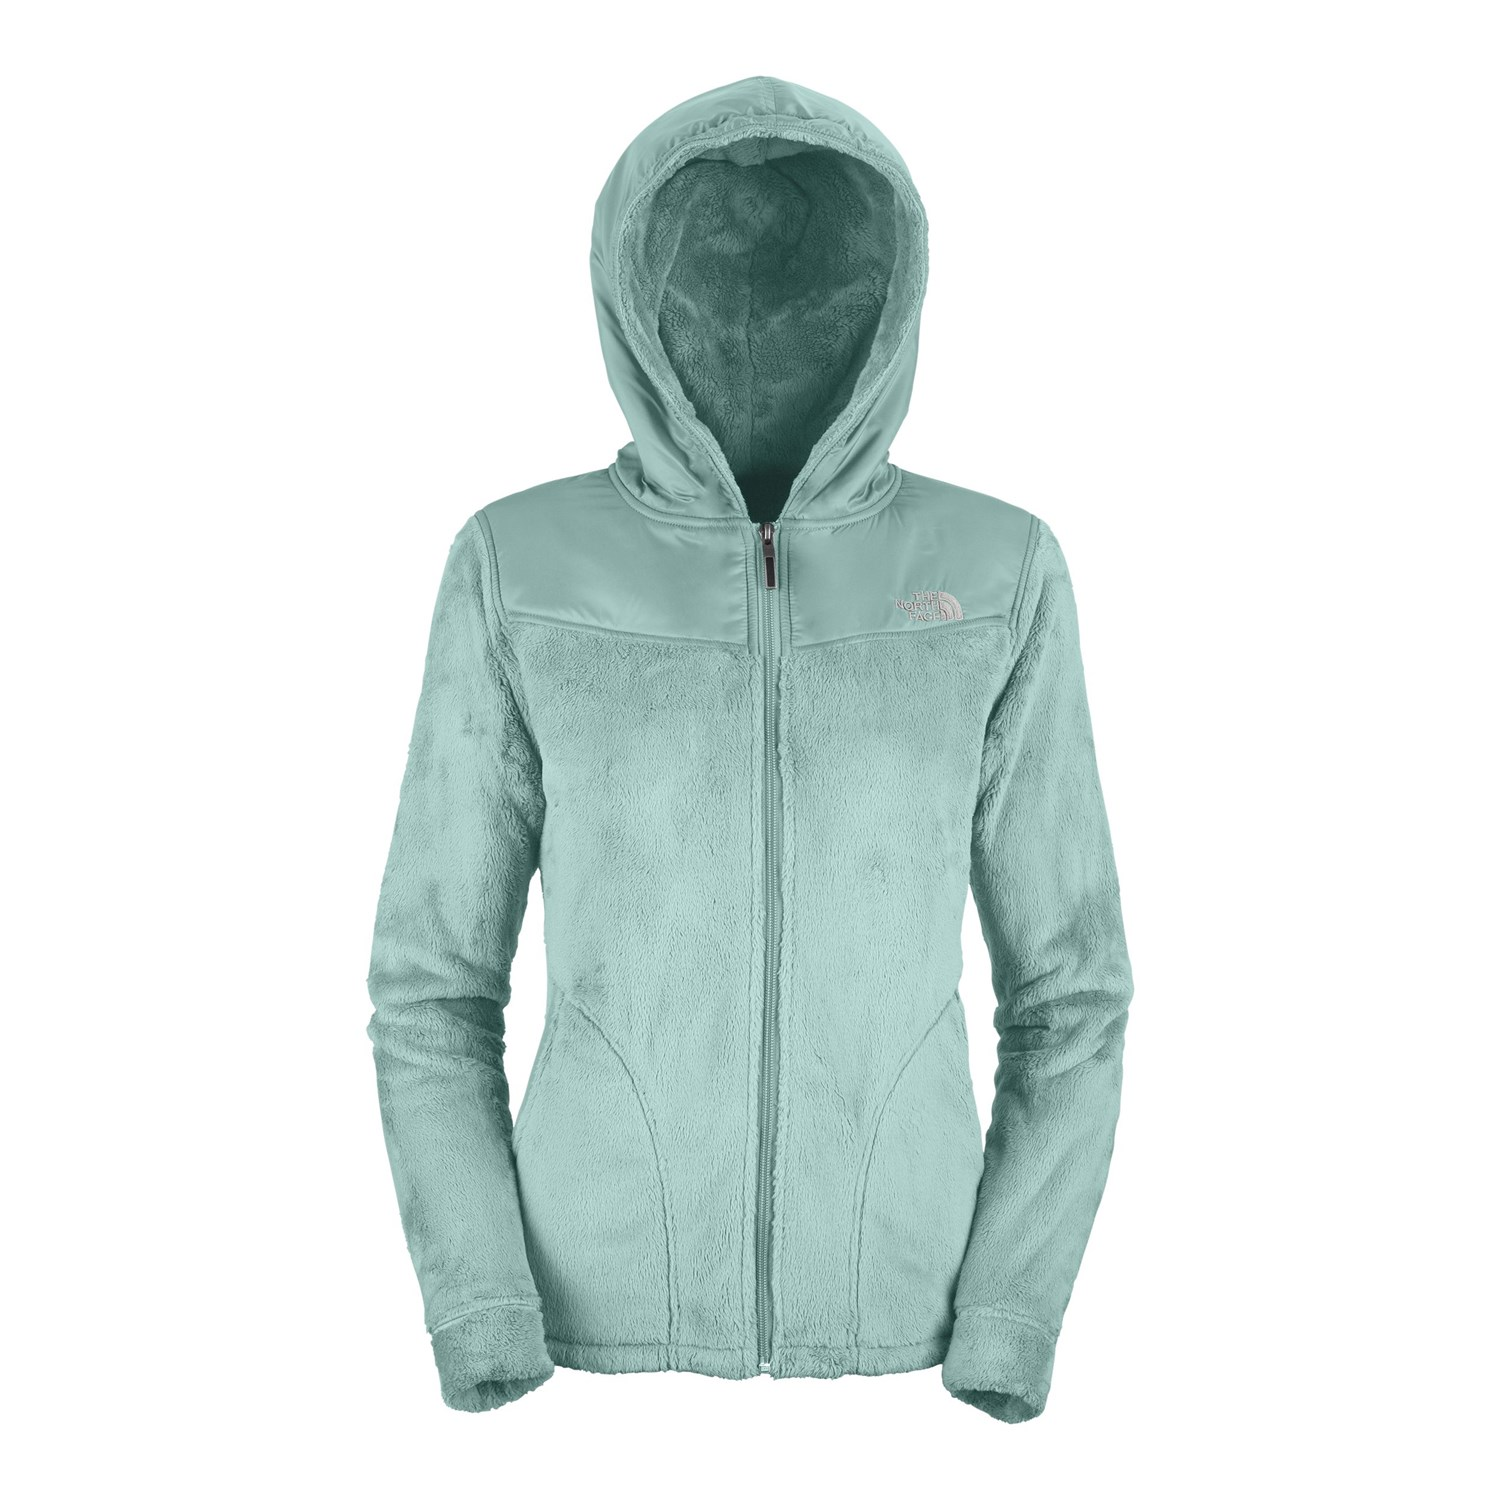 a642129f5 The North Face Oso Hoodie - Women's | evo